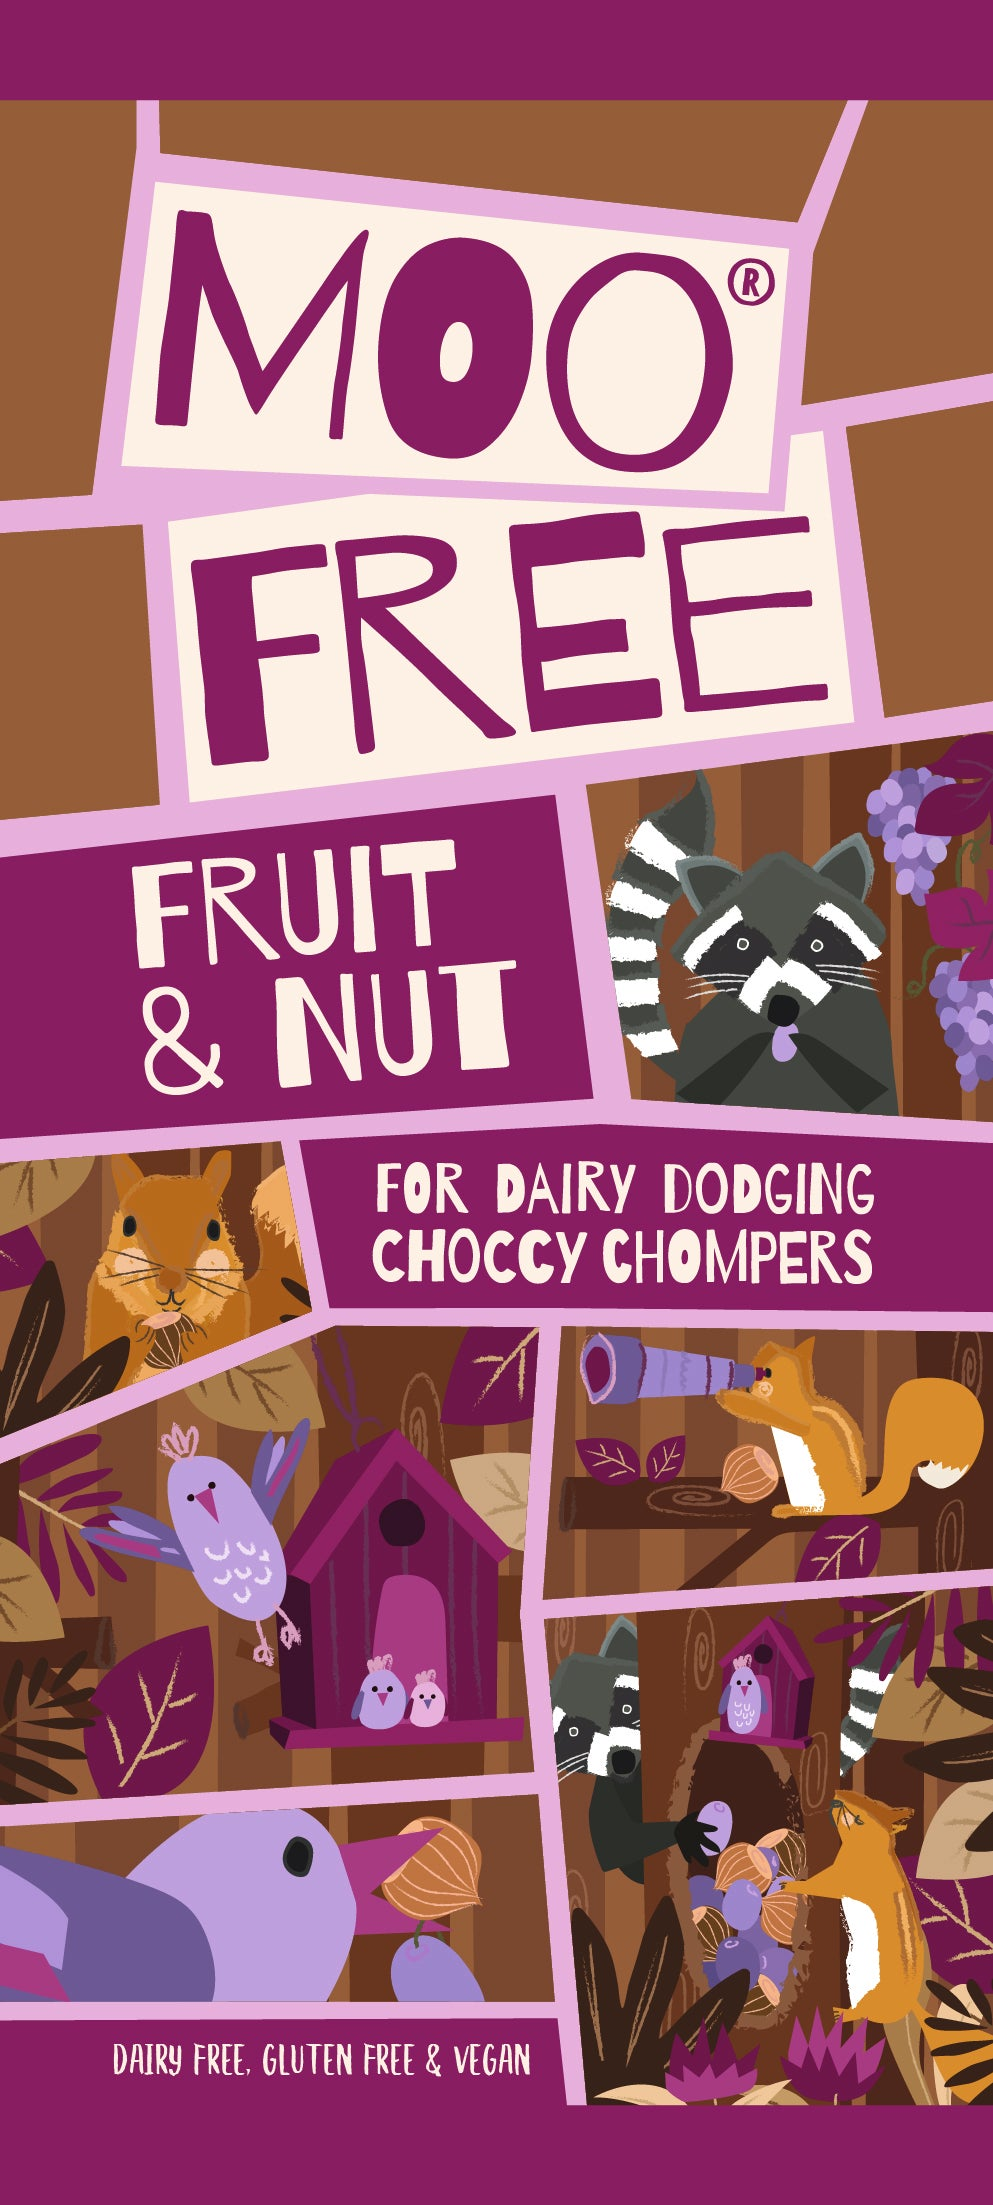 Moofree fruit and nut bar